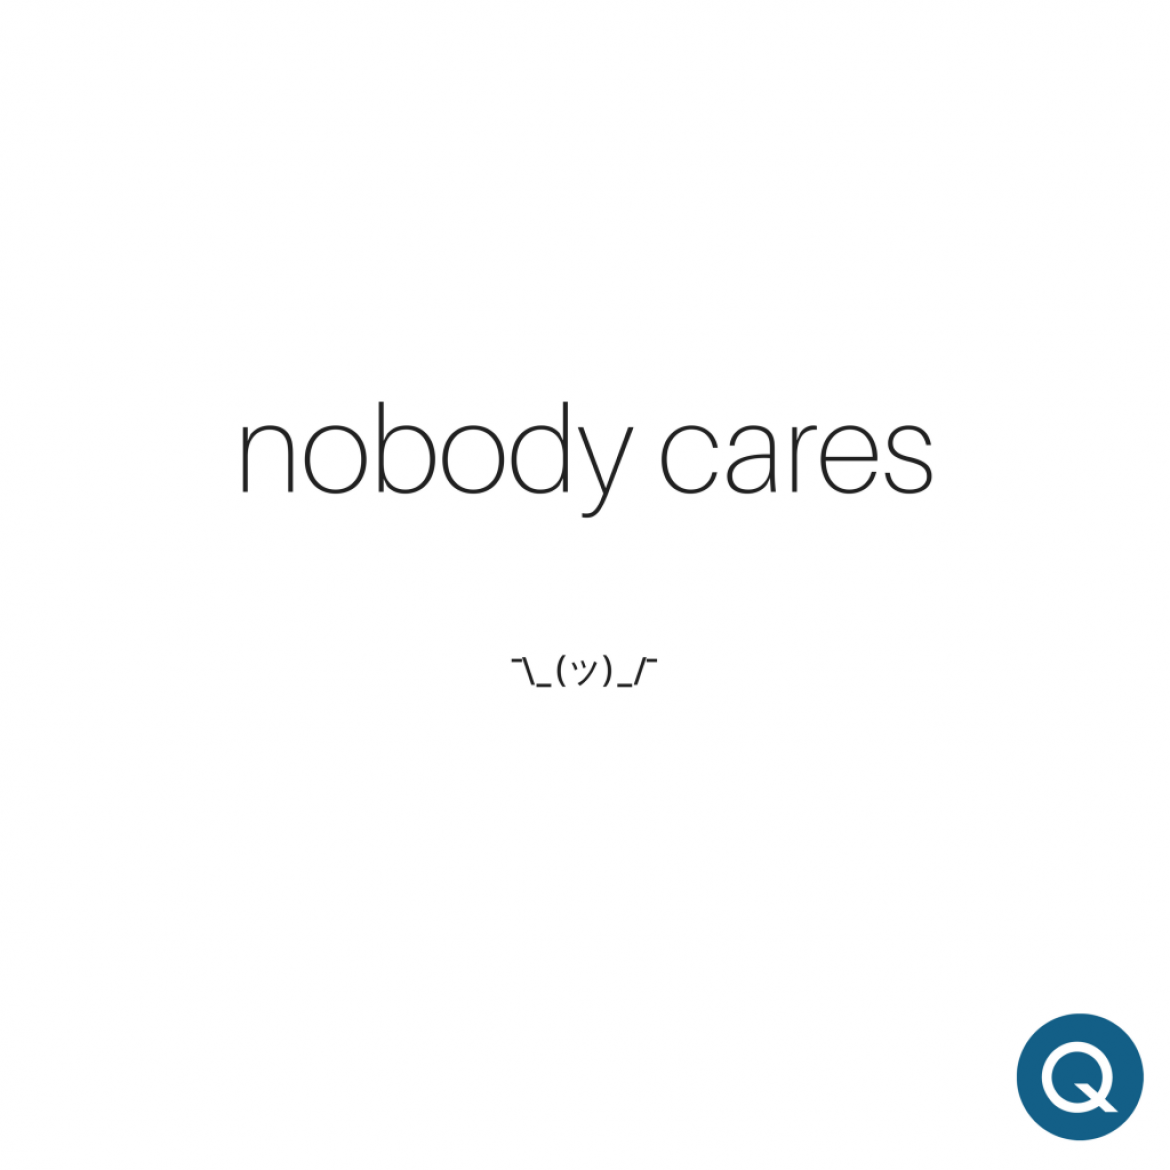 nobody cares episode 1